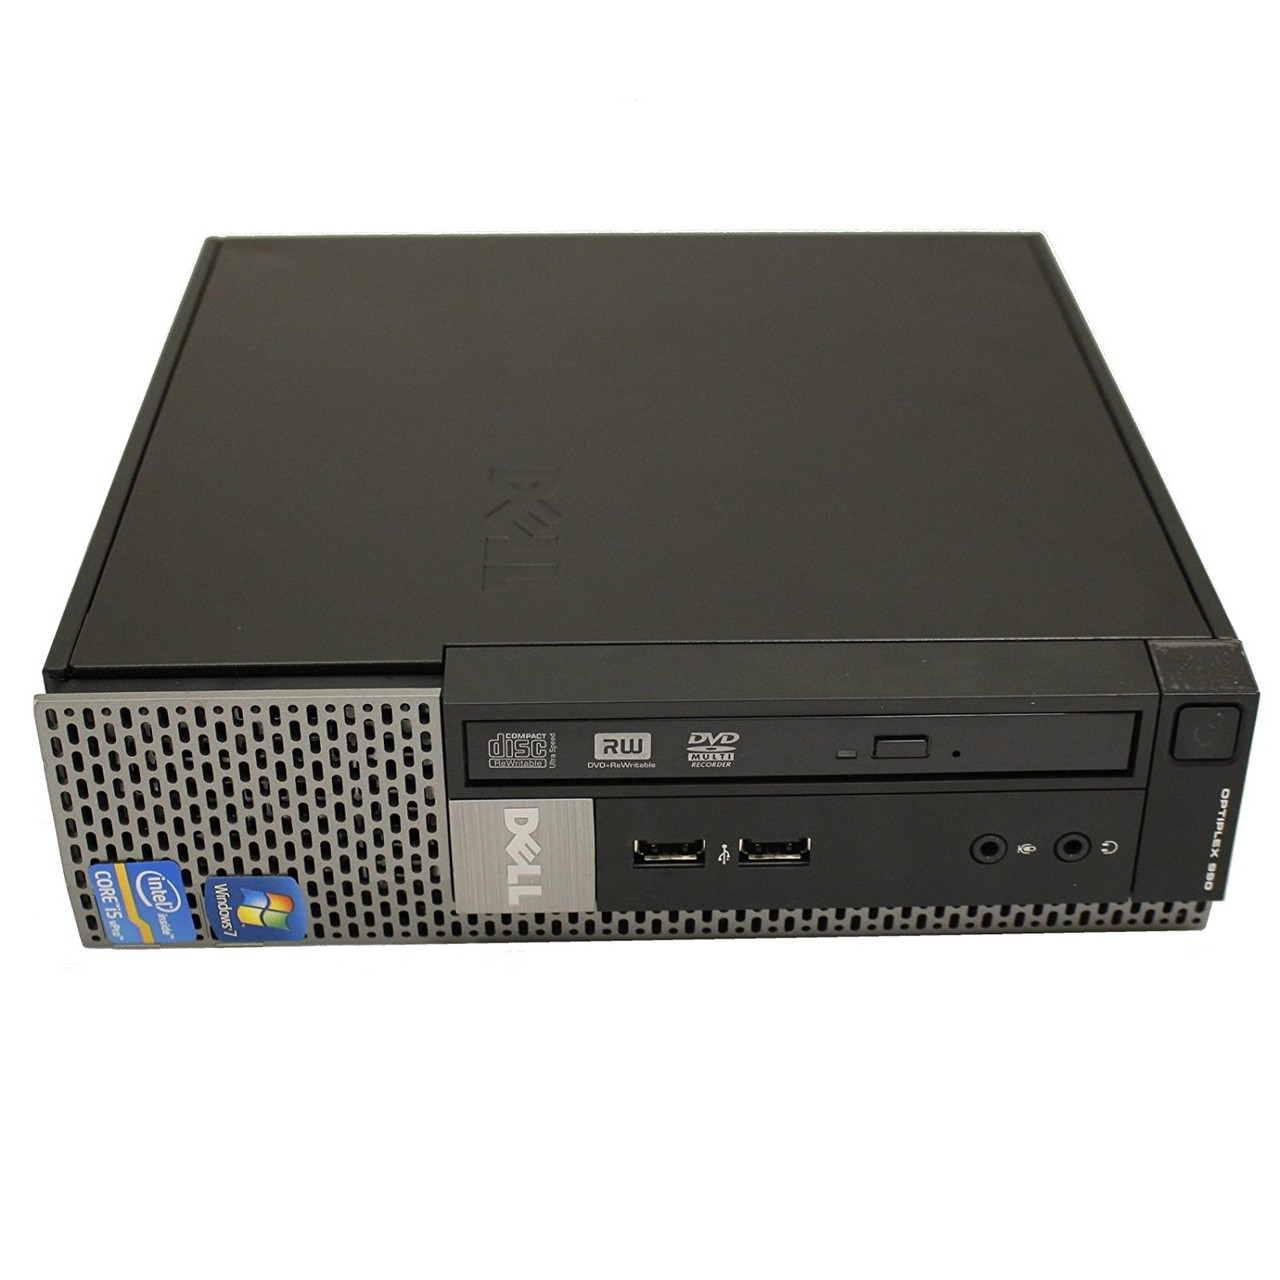 Dell Optiplex 990 USFF Quad Core i5 2.5GHz, 4GB Ram, 320GB HDD, DVD-RW, Windows 10 Pro 64 Desktop Computer